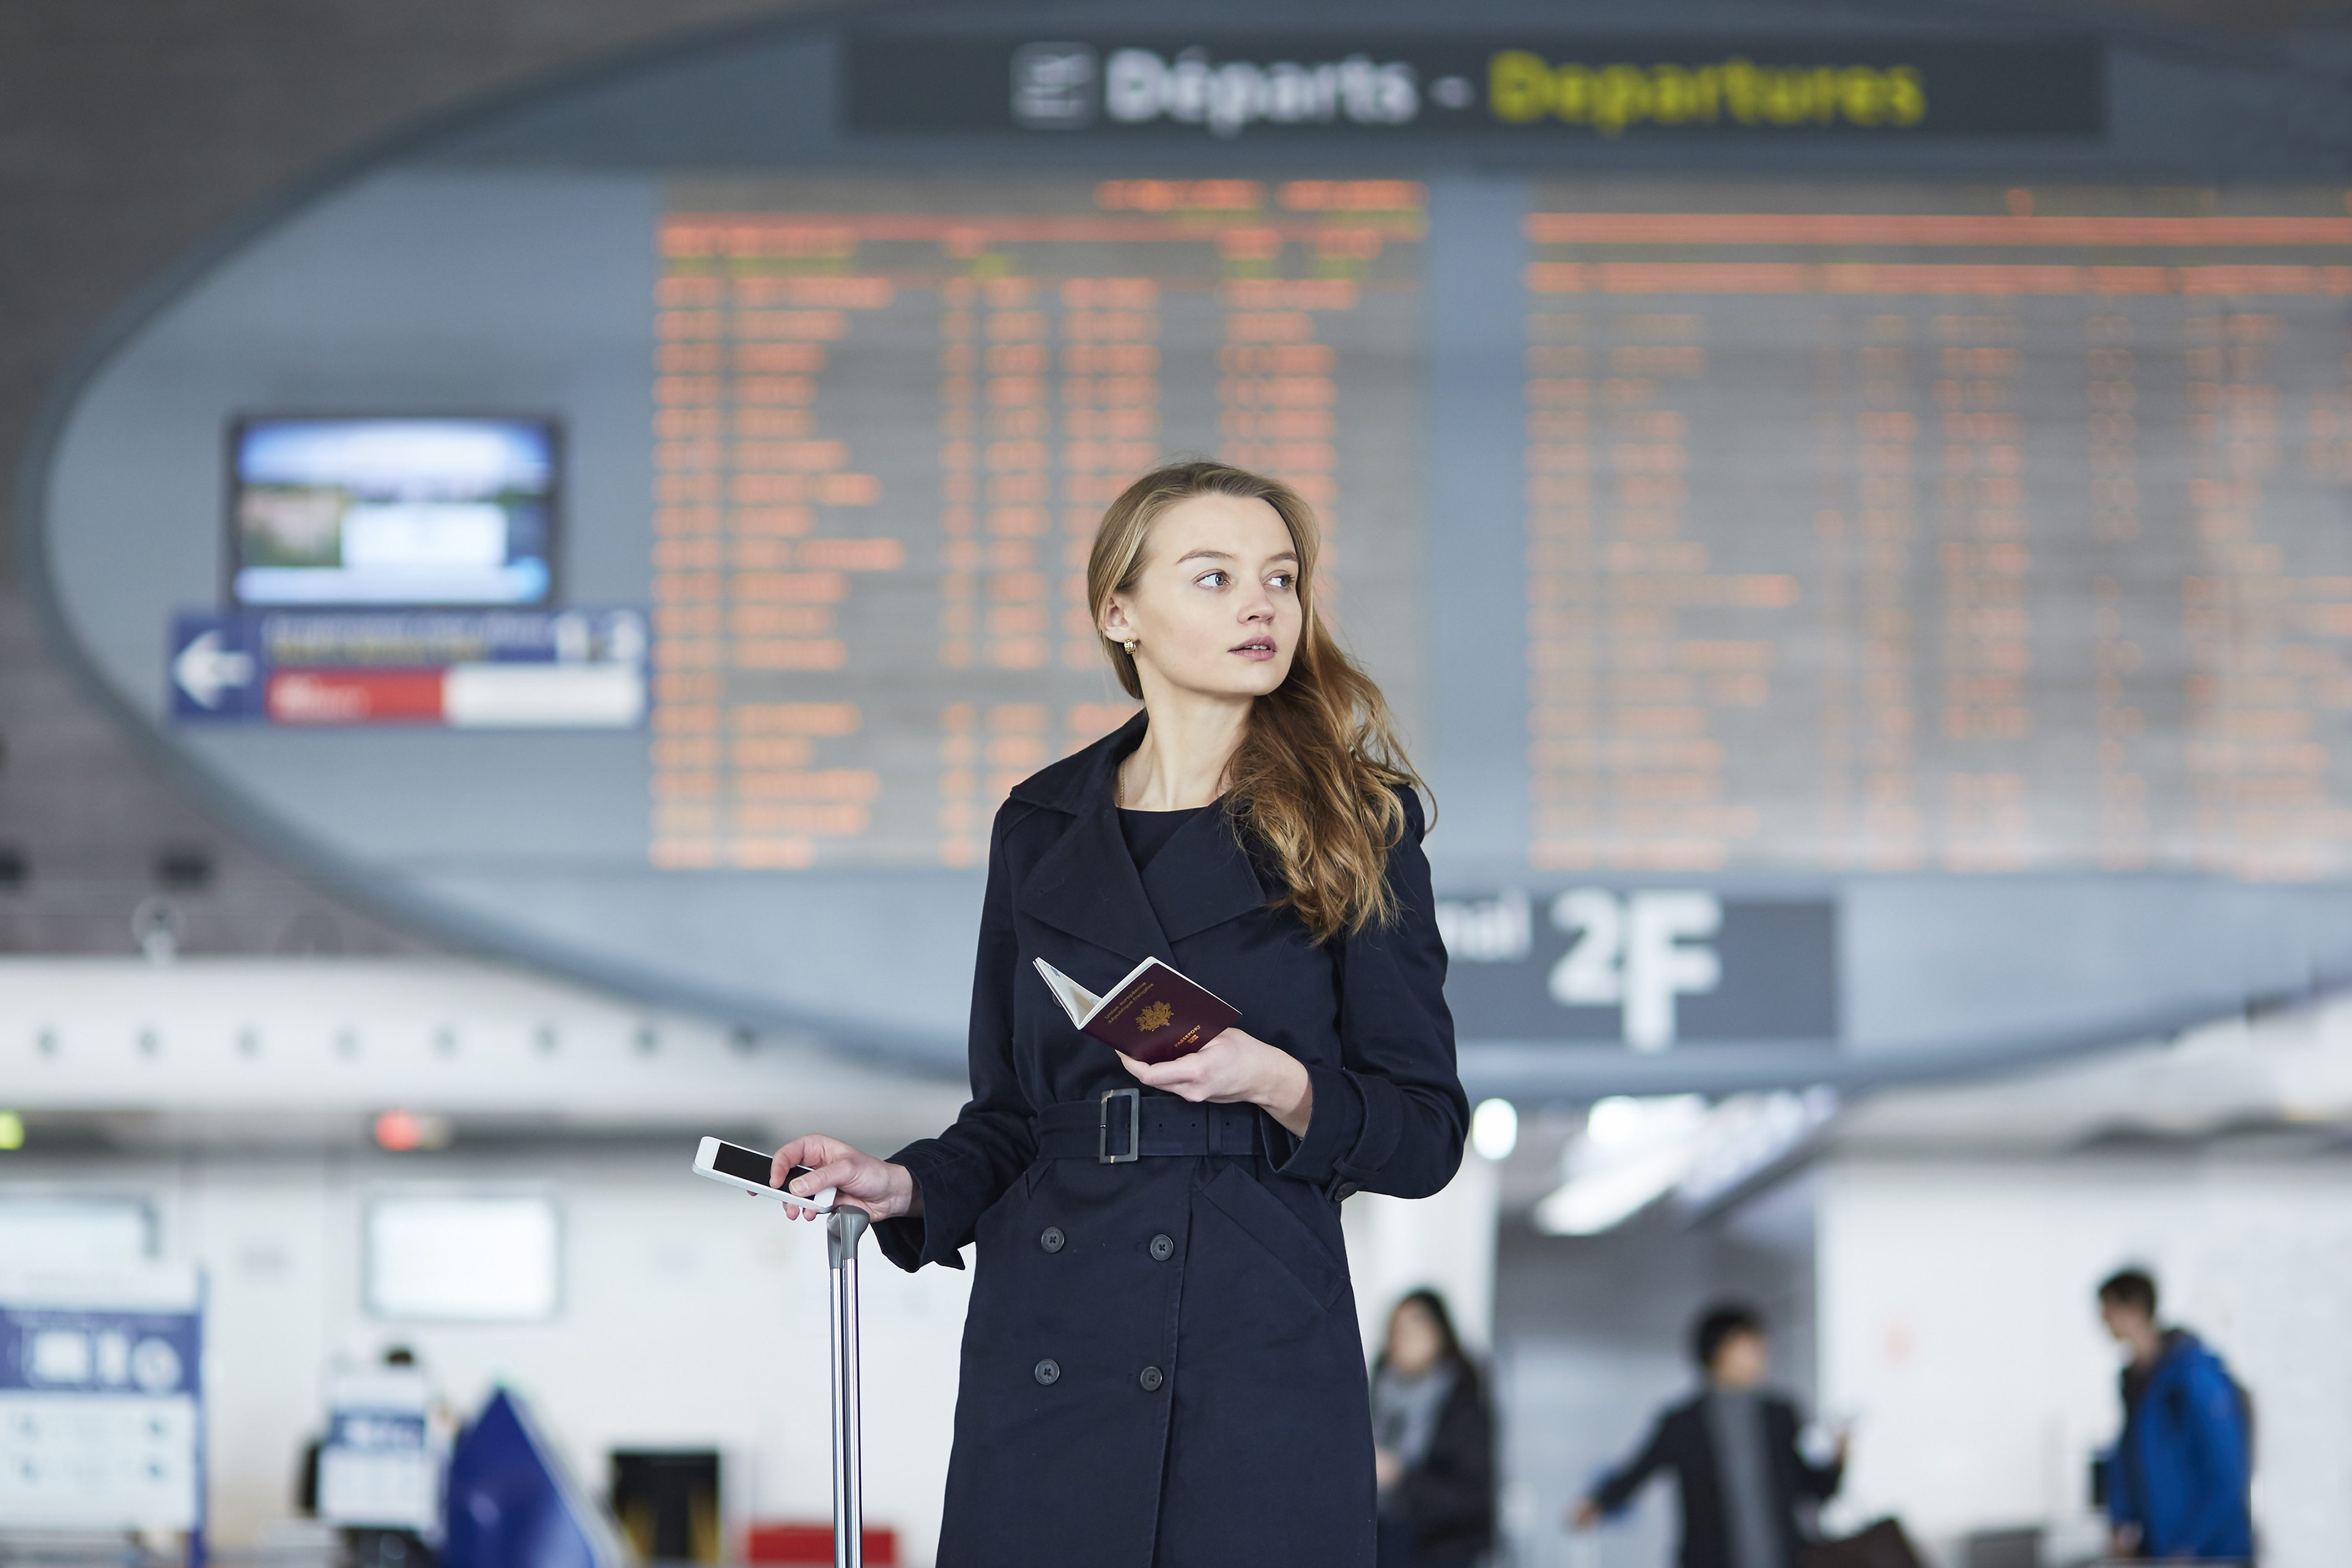 Young woman in international airport near the flight information board, looking in her passport